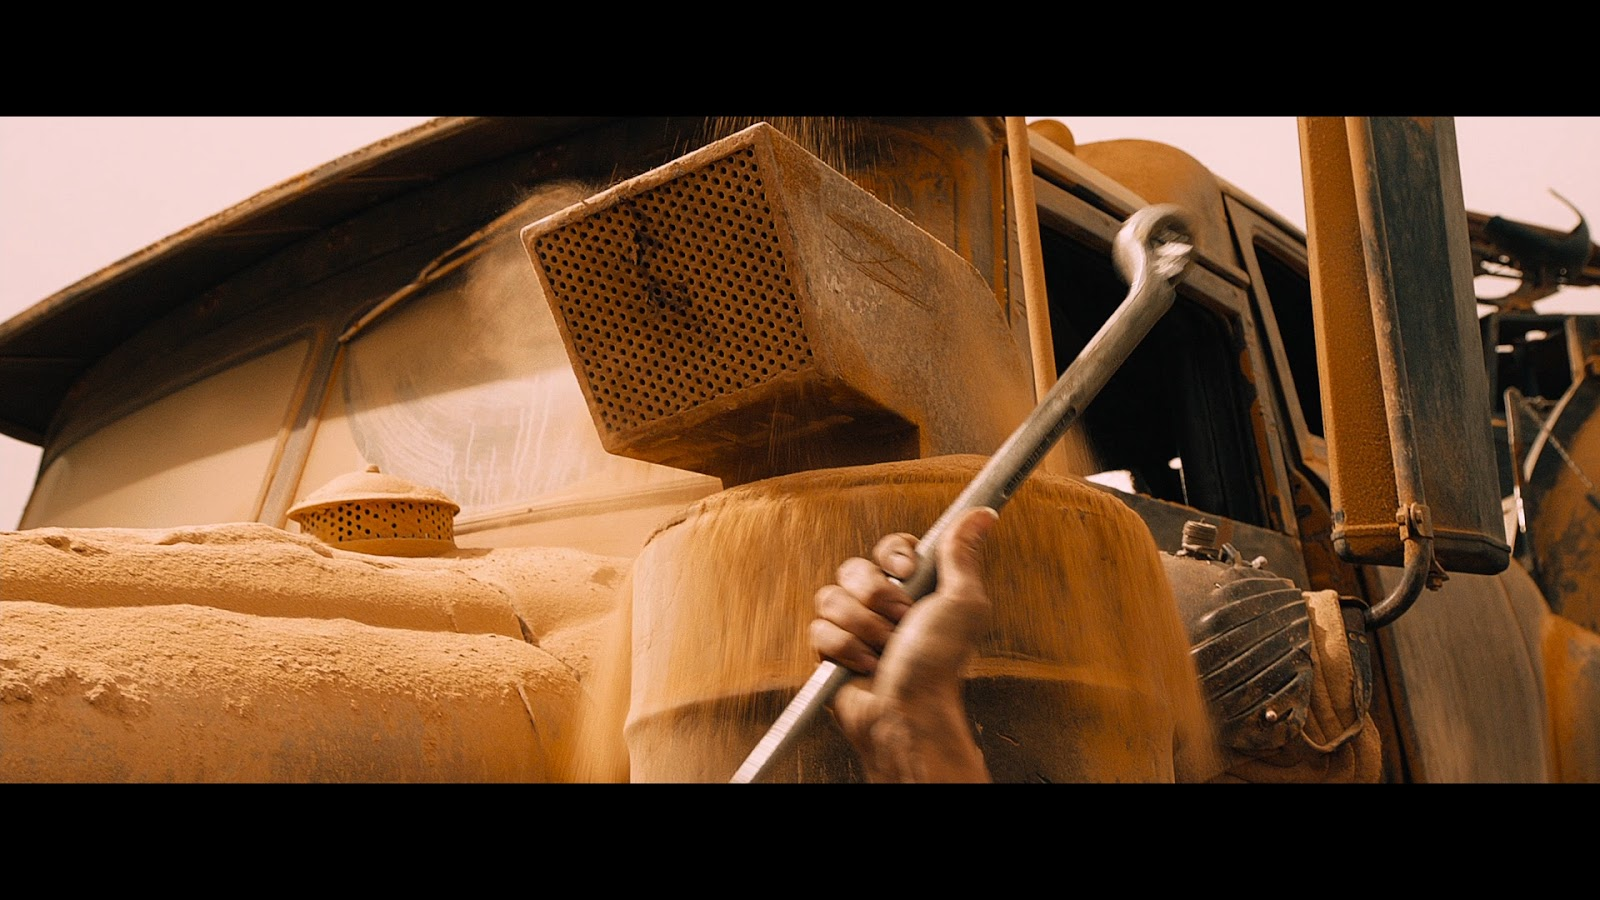 colorful animation expressions mad max fury road soundtrack the illusory effect of modern blockbusters is often rather based on a close sound image relationship than on realism of content thus in george miller s